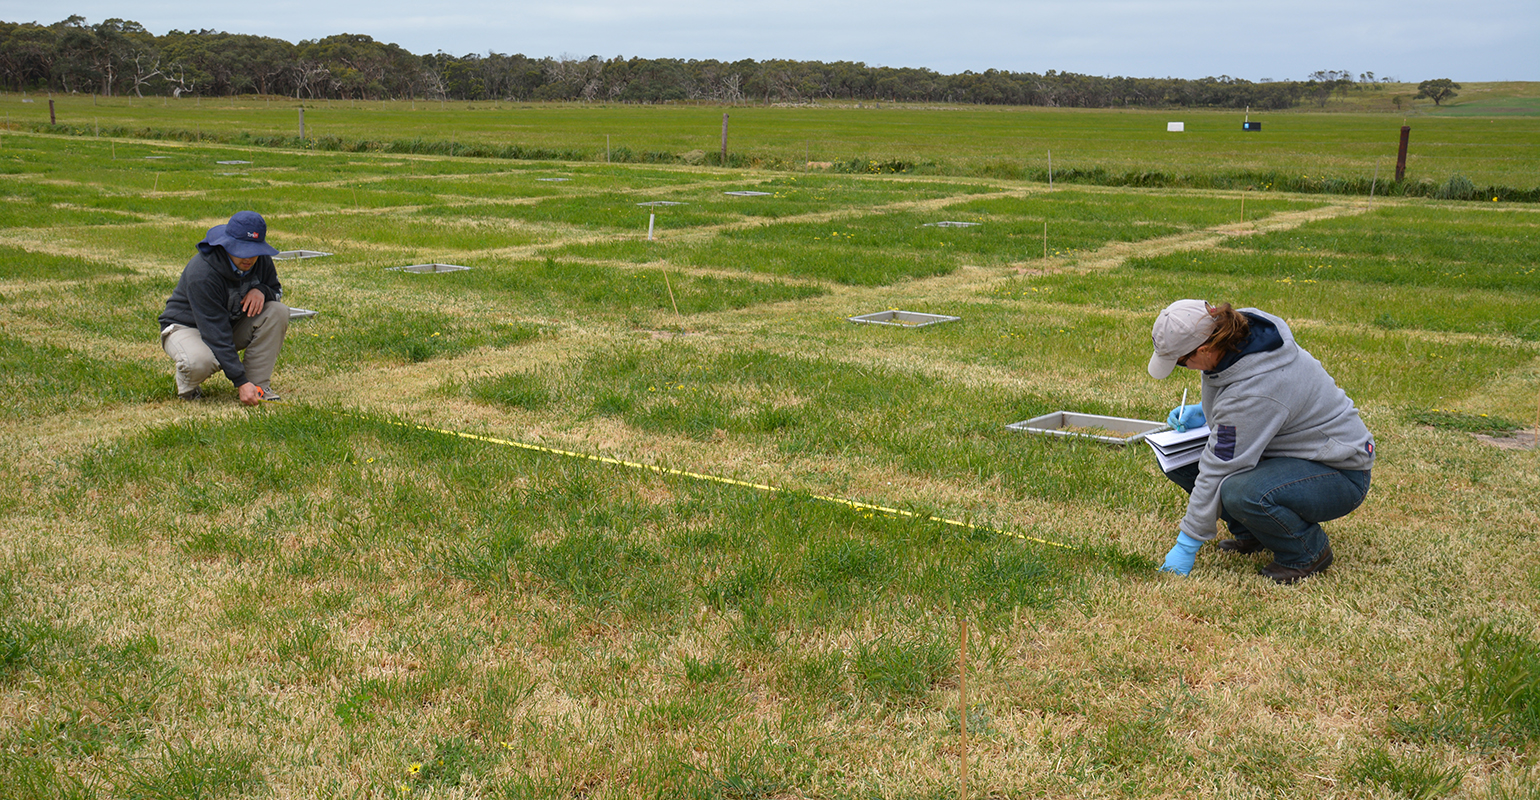 Researchers measure experimental plots and collect data from a field trial to learn about nitrogen loss from different food products.